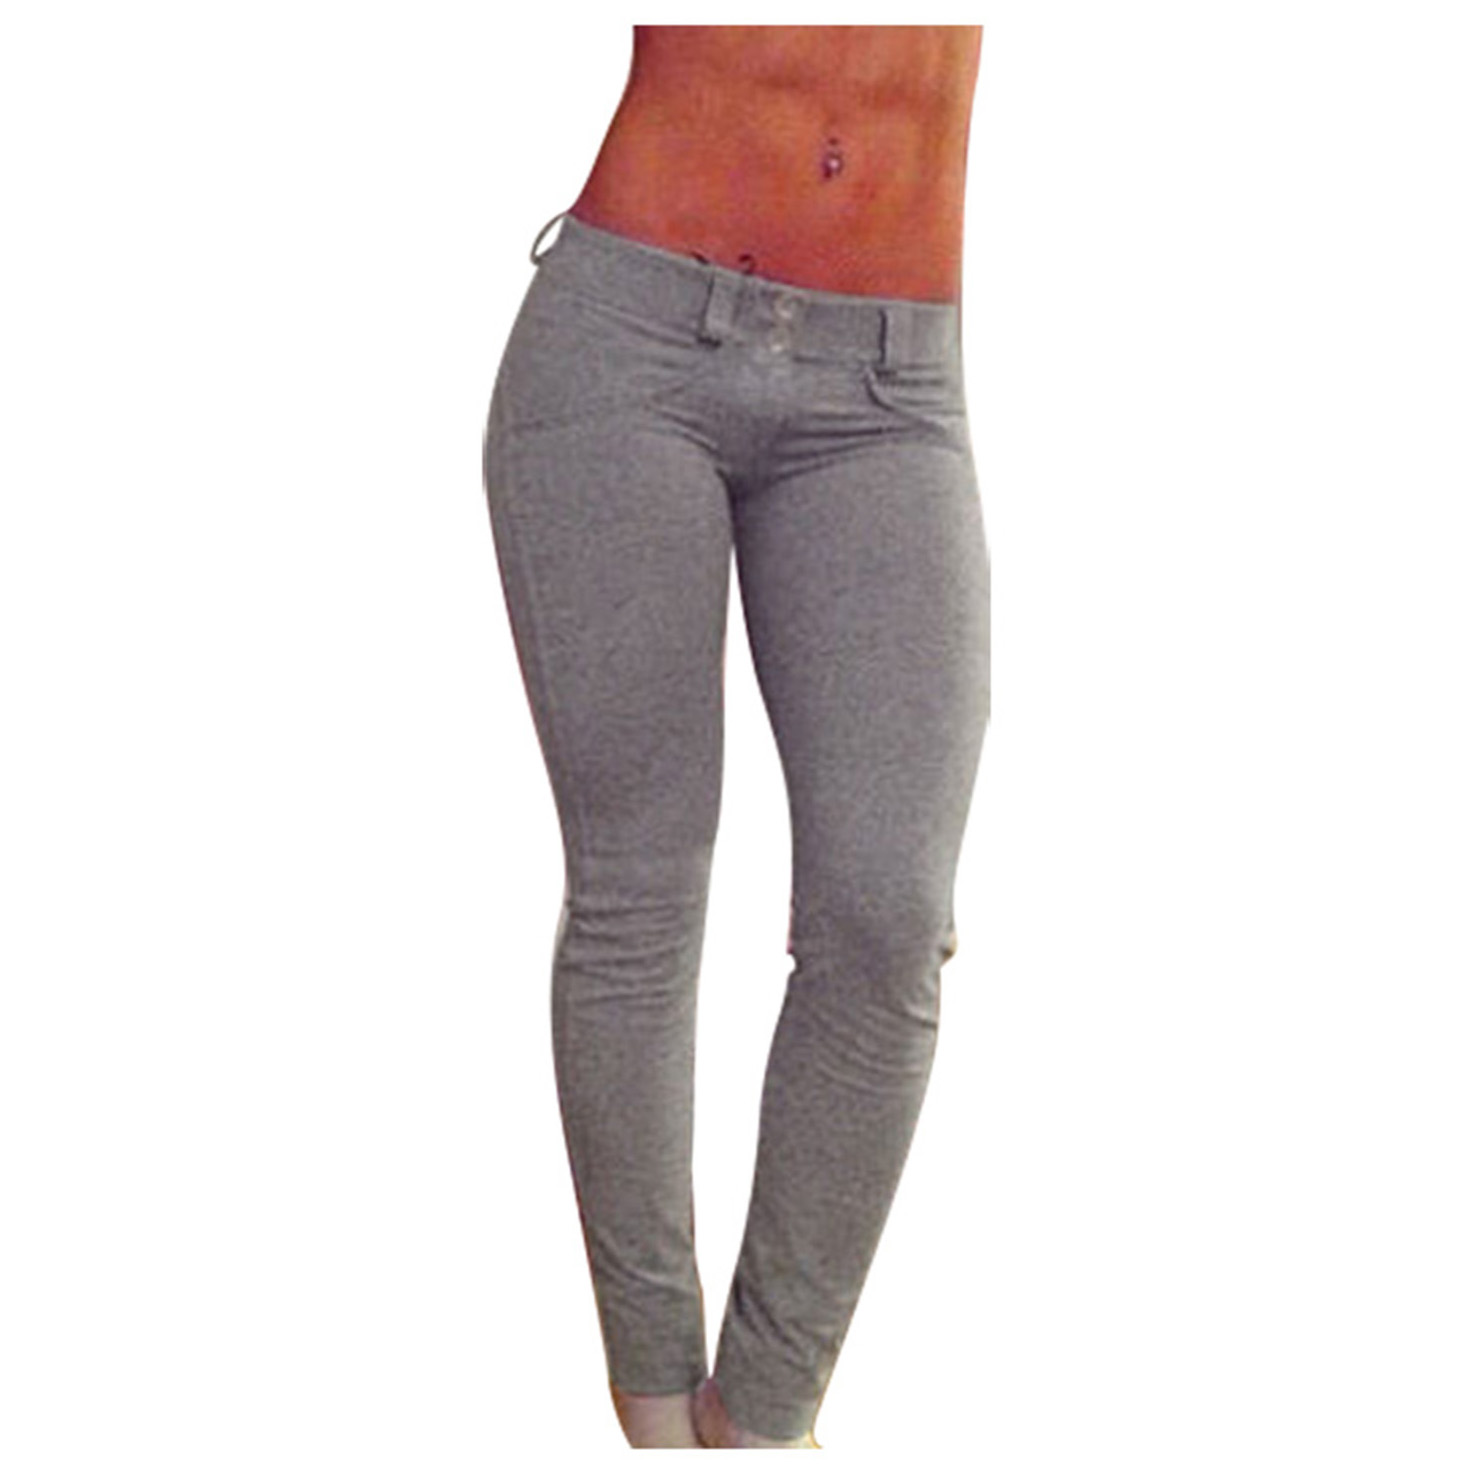 SYB 2016 NEW Hot Sexy Women Butt Lift Pants Colombian Brazilian Style Stretchy Skinny Leggings Pencil Trousers